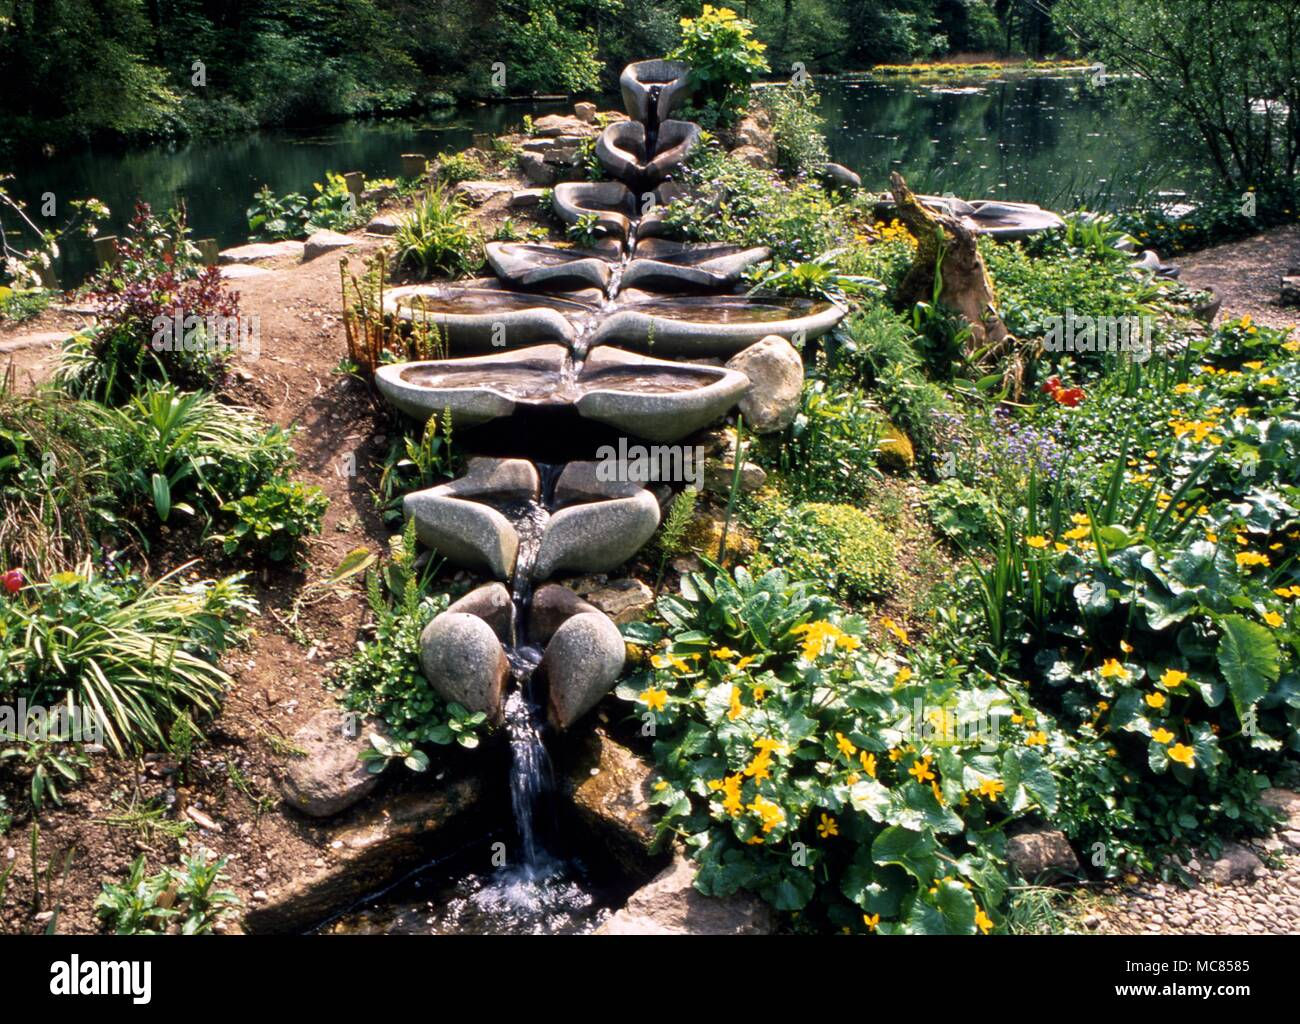 Anthroposophy Water flows, designed according to the principles set out by the great esotericist Rudolf Steiner.  1861-1925, in the private gardens of Ruskin House near Stroud - Stock Image